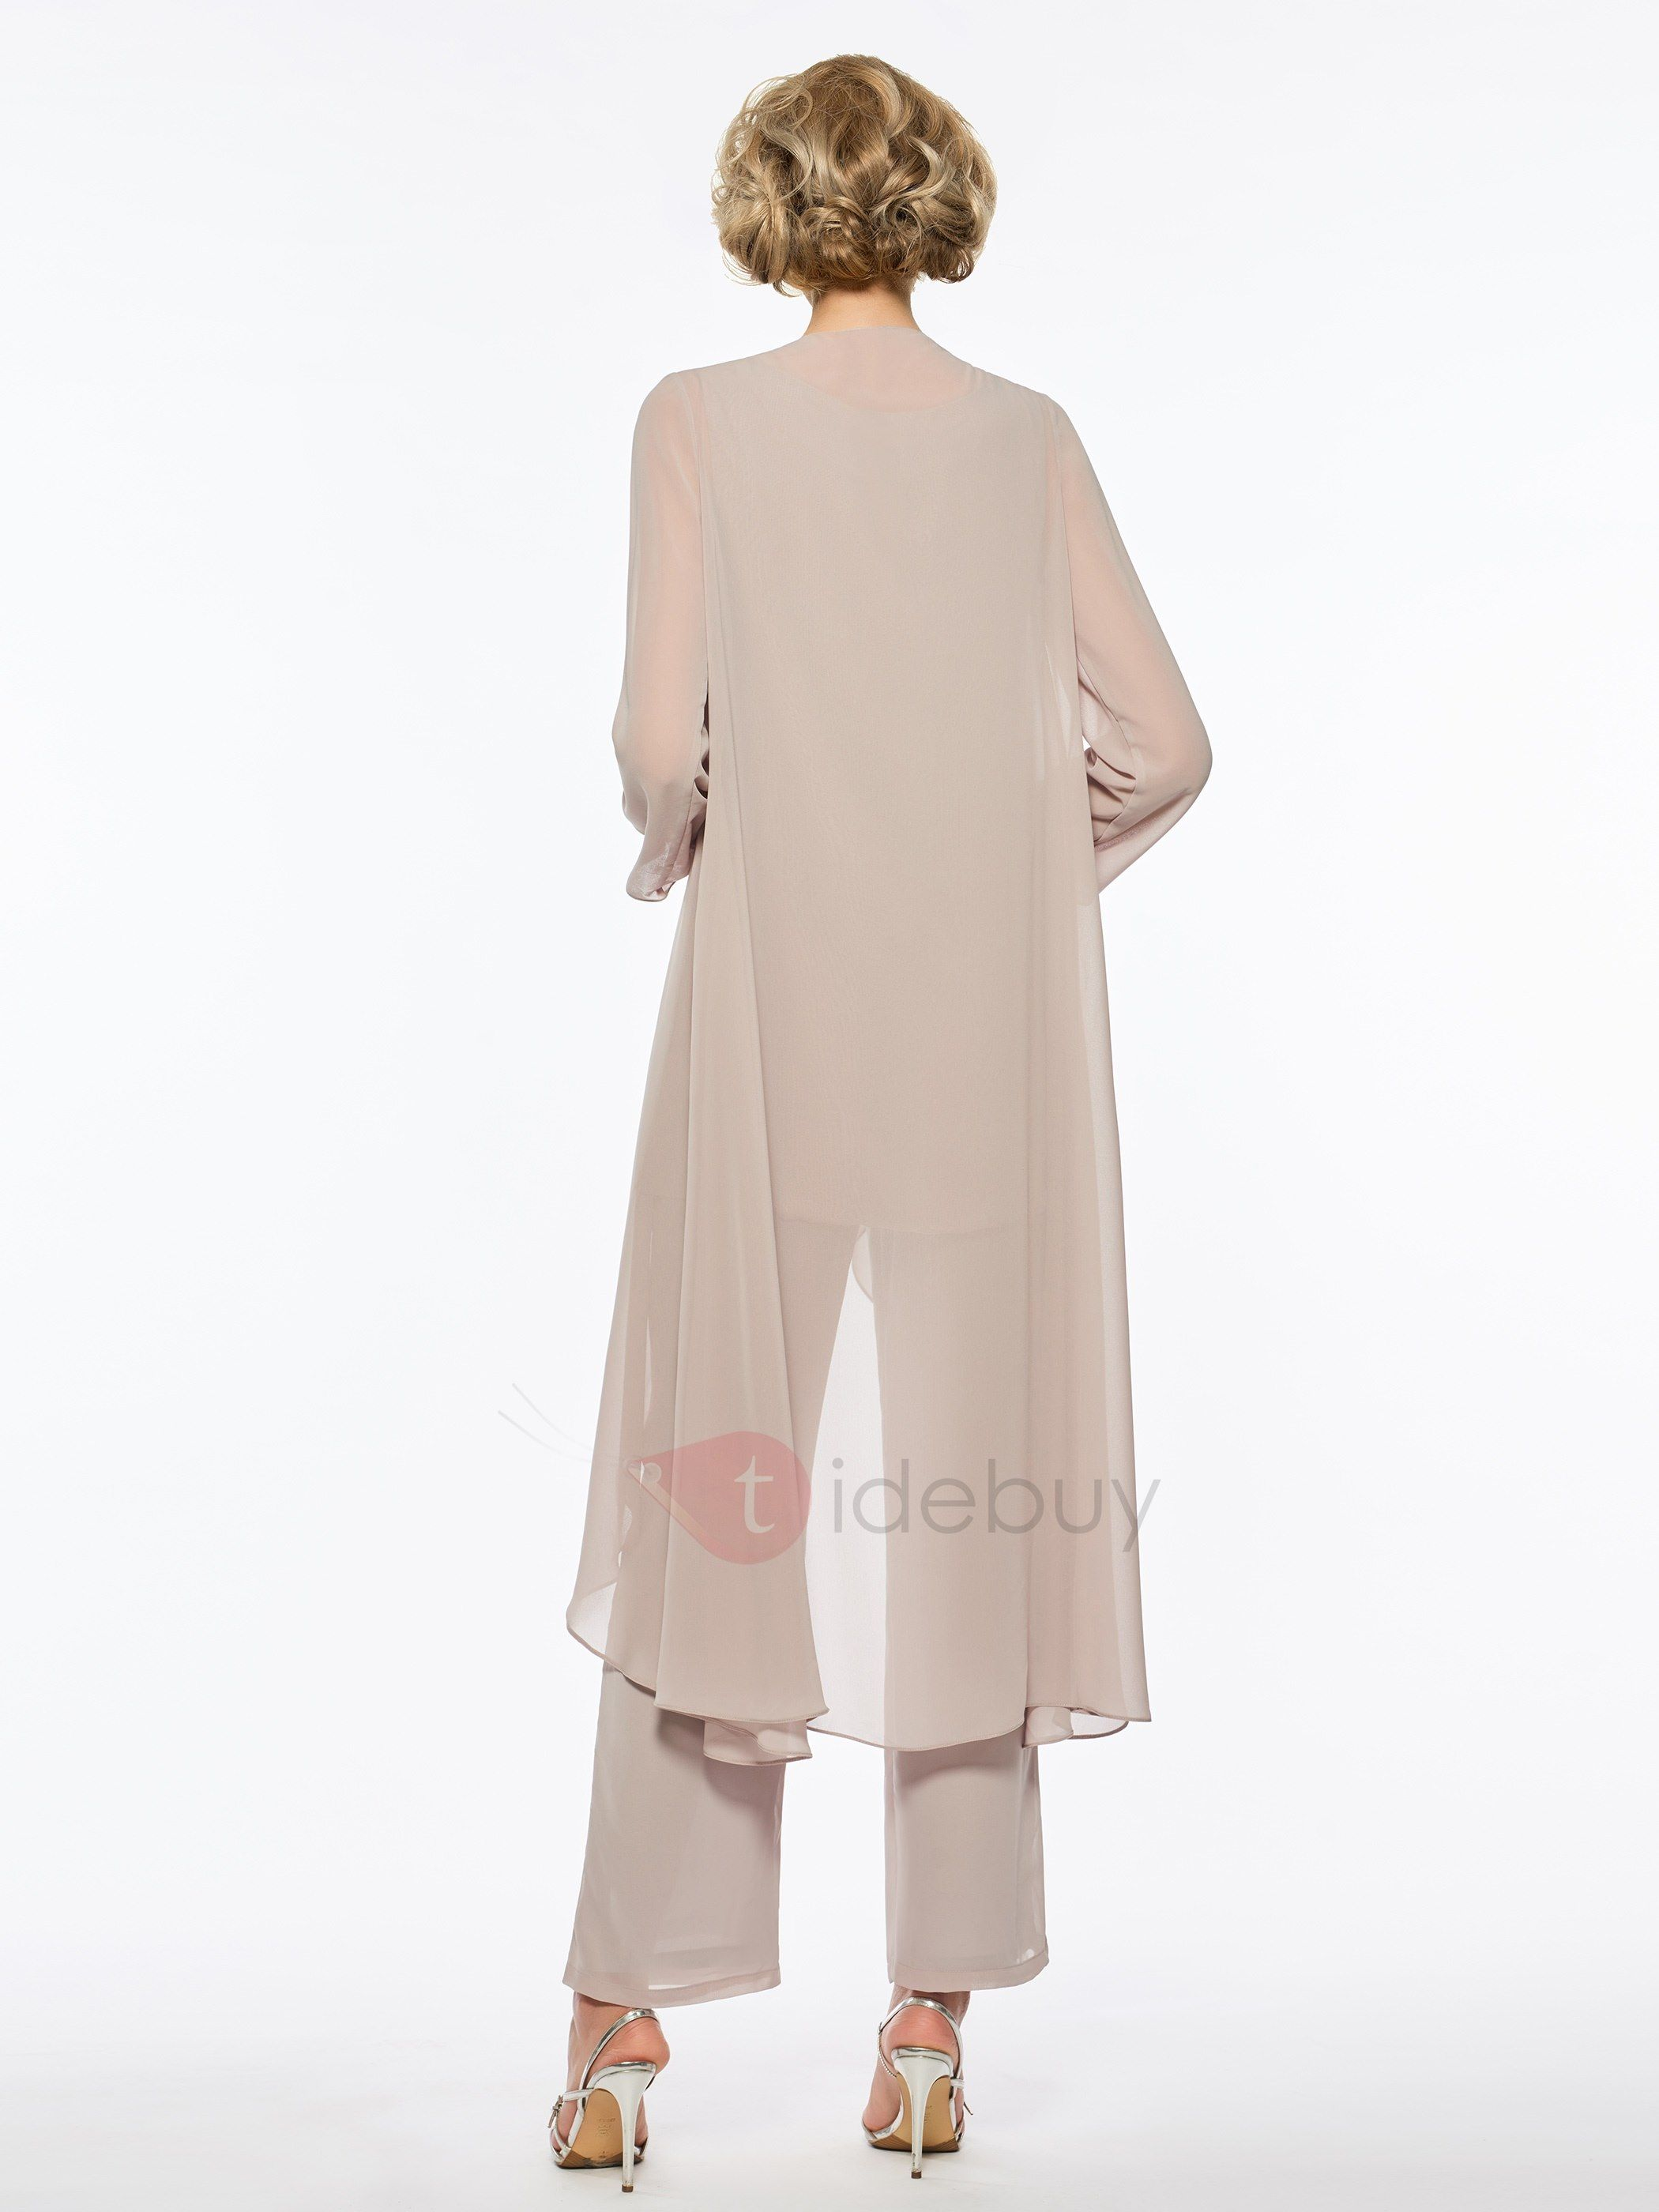 560fc8f512a Tidebuy.com Offers High Quality Pure Mother of the Bride Jumpsuit with Long  Sleeve Jacket